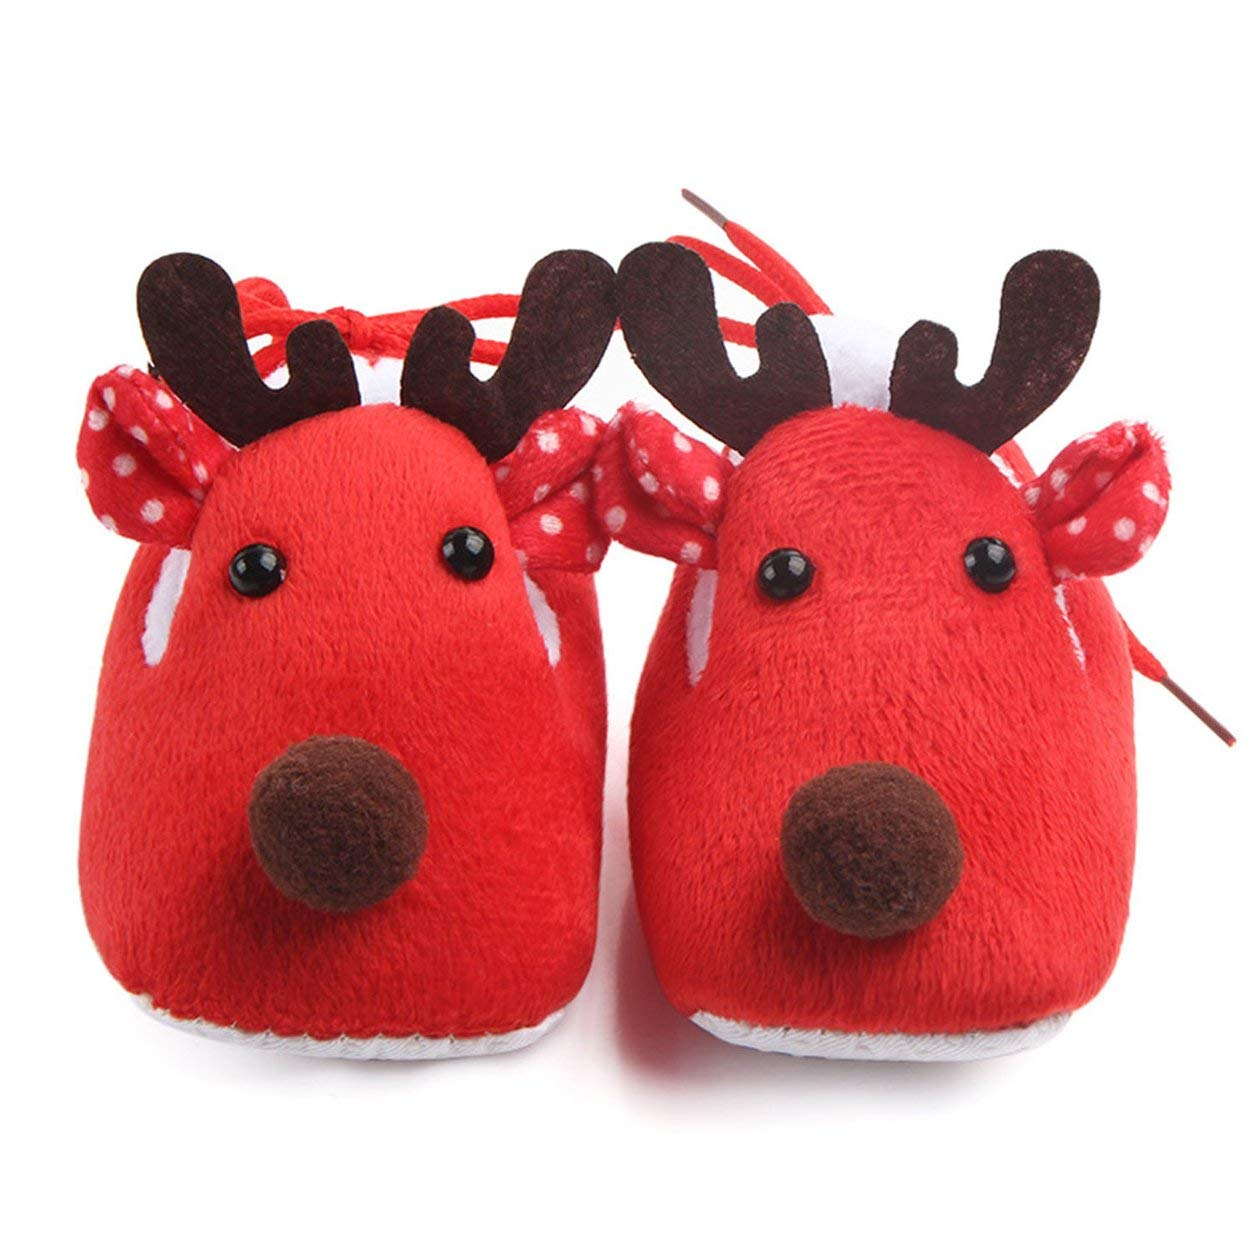 Lovely Christmas Deer Winter Coral Velvet Suela sú per Suave en la Parte Inferior Zapatos Niñ os Niñ as Toddler Baby Shoes Có modo Uso Diario Dailyinshop